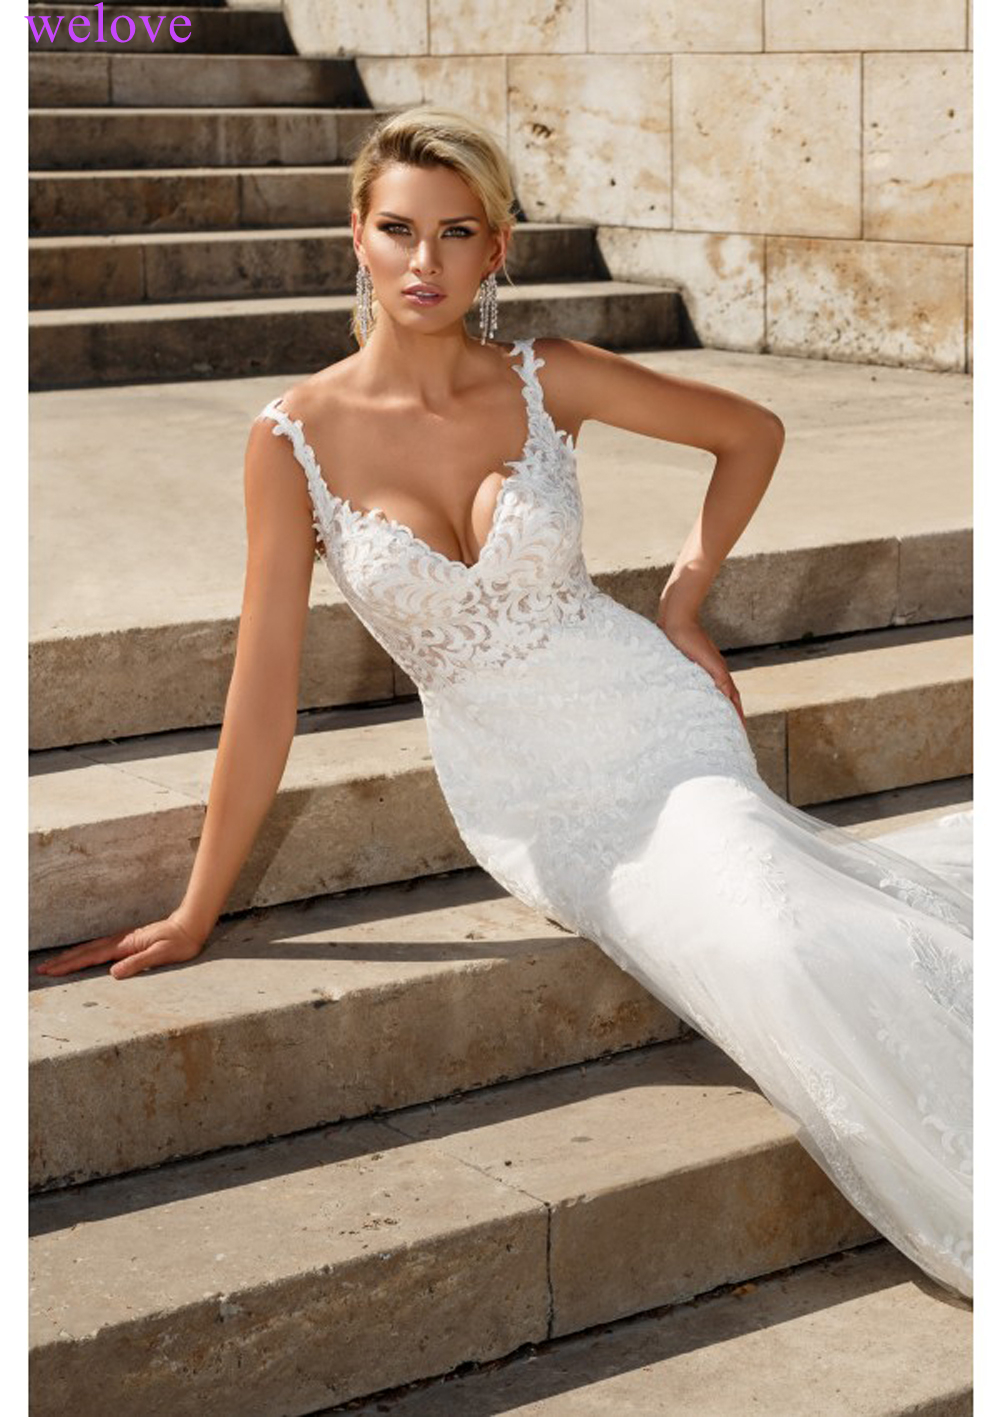 Lace Mermaid Wedding Dresses 2019 Custom Made Appliques fishtail Wedding Gown Vestido de noiva vestidos de fiesta de noche